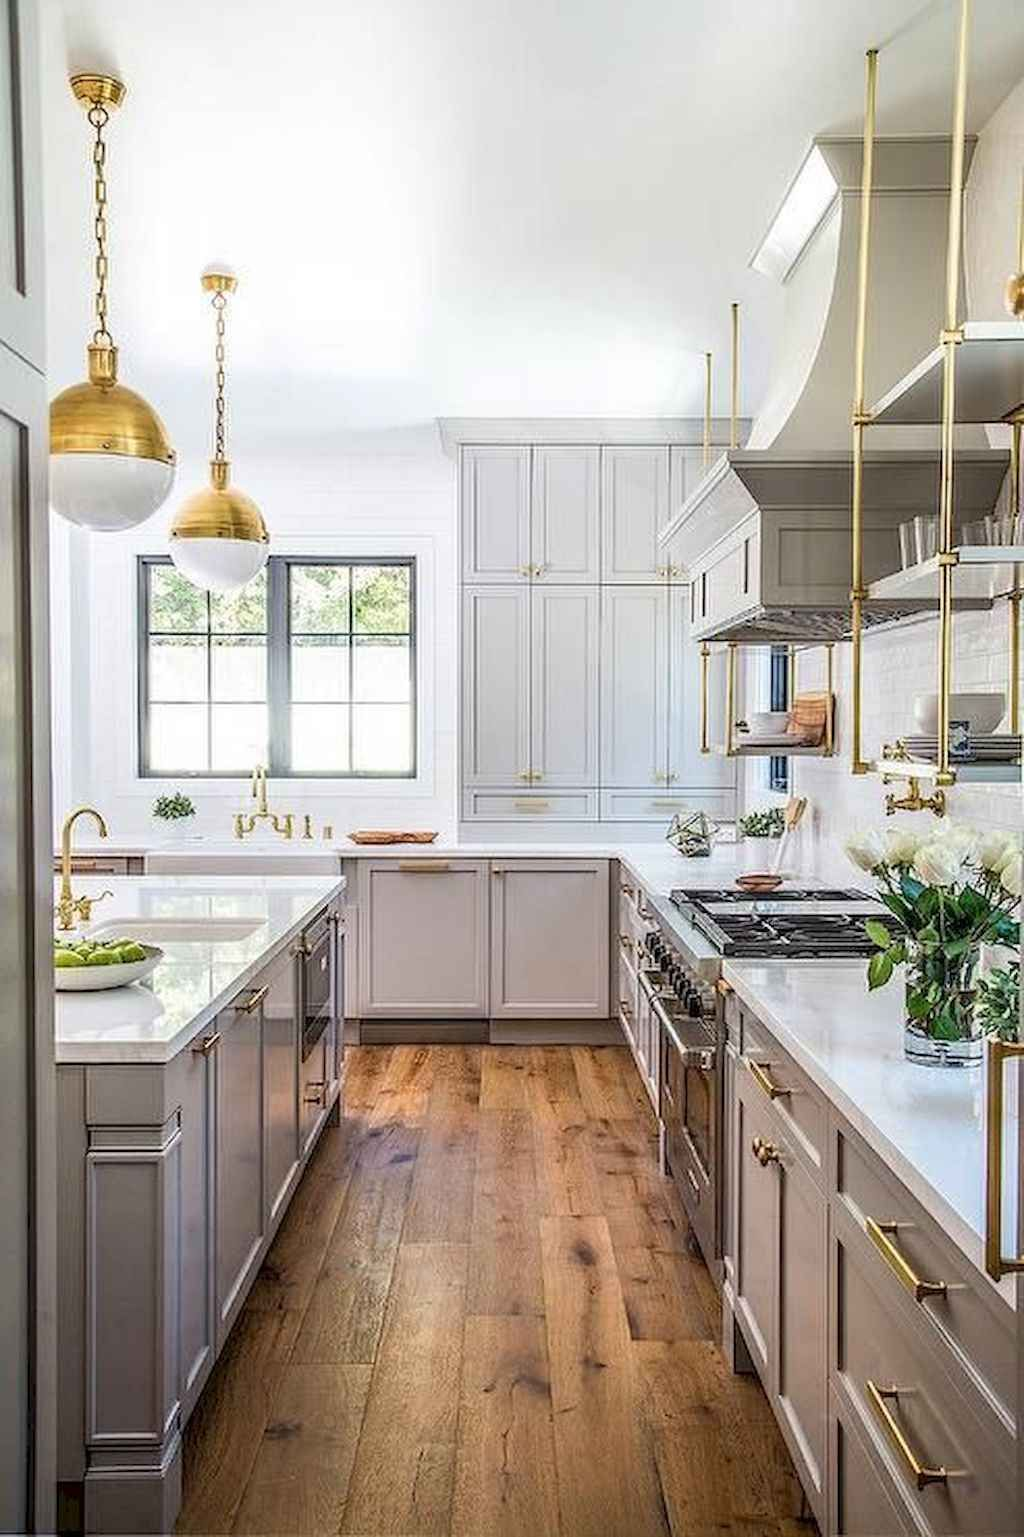 75 Farmhouse Gray Kitchen Cabinet Design Ideas #graykitchencabinets